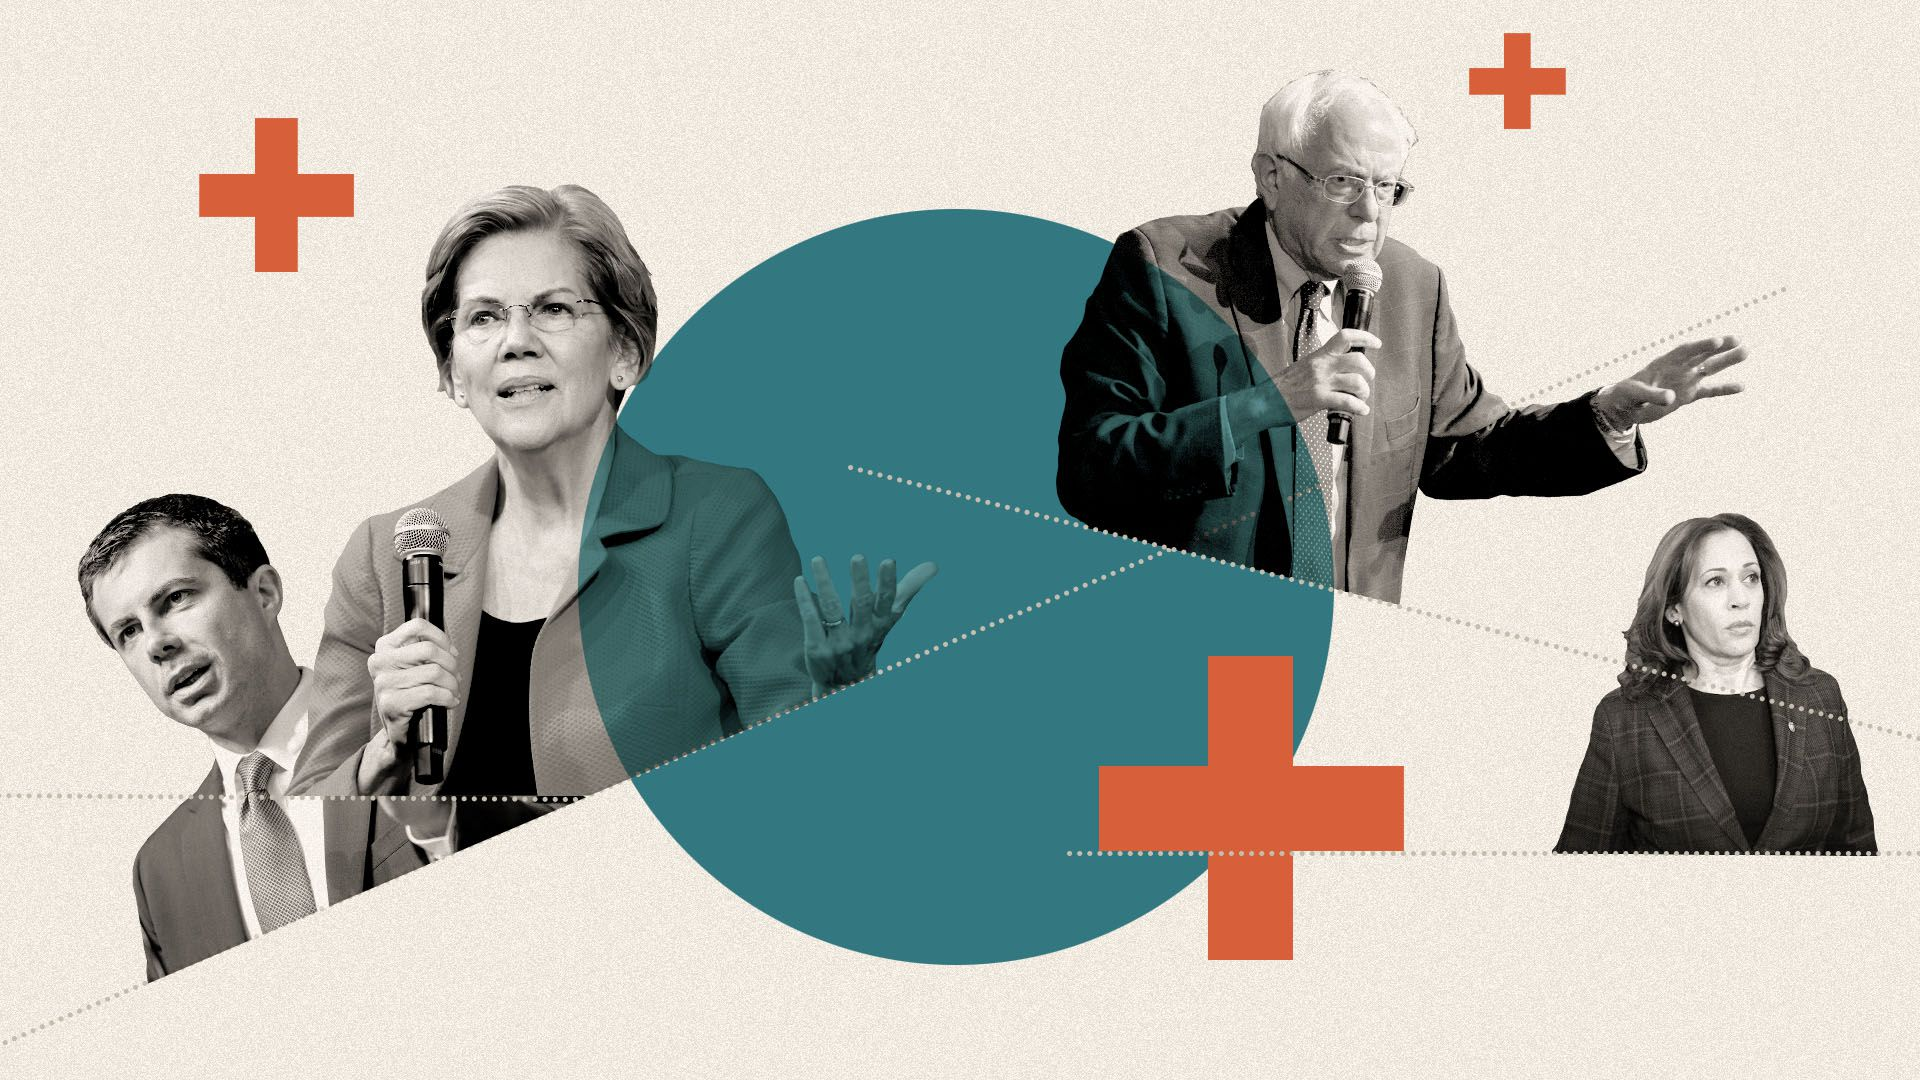 Medicare for All popularity has tumbled since it became a 2020 primary flashpoint